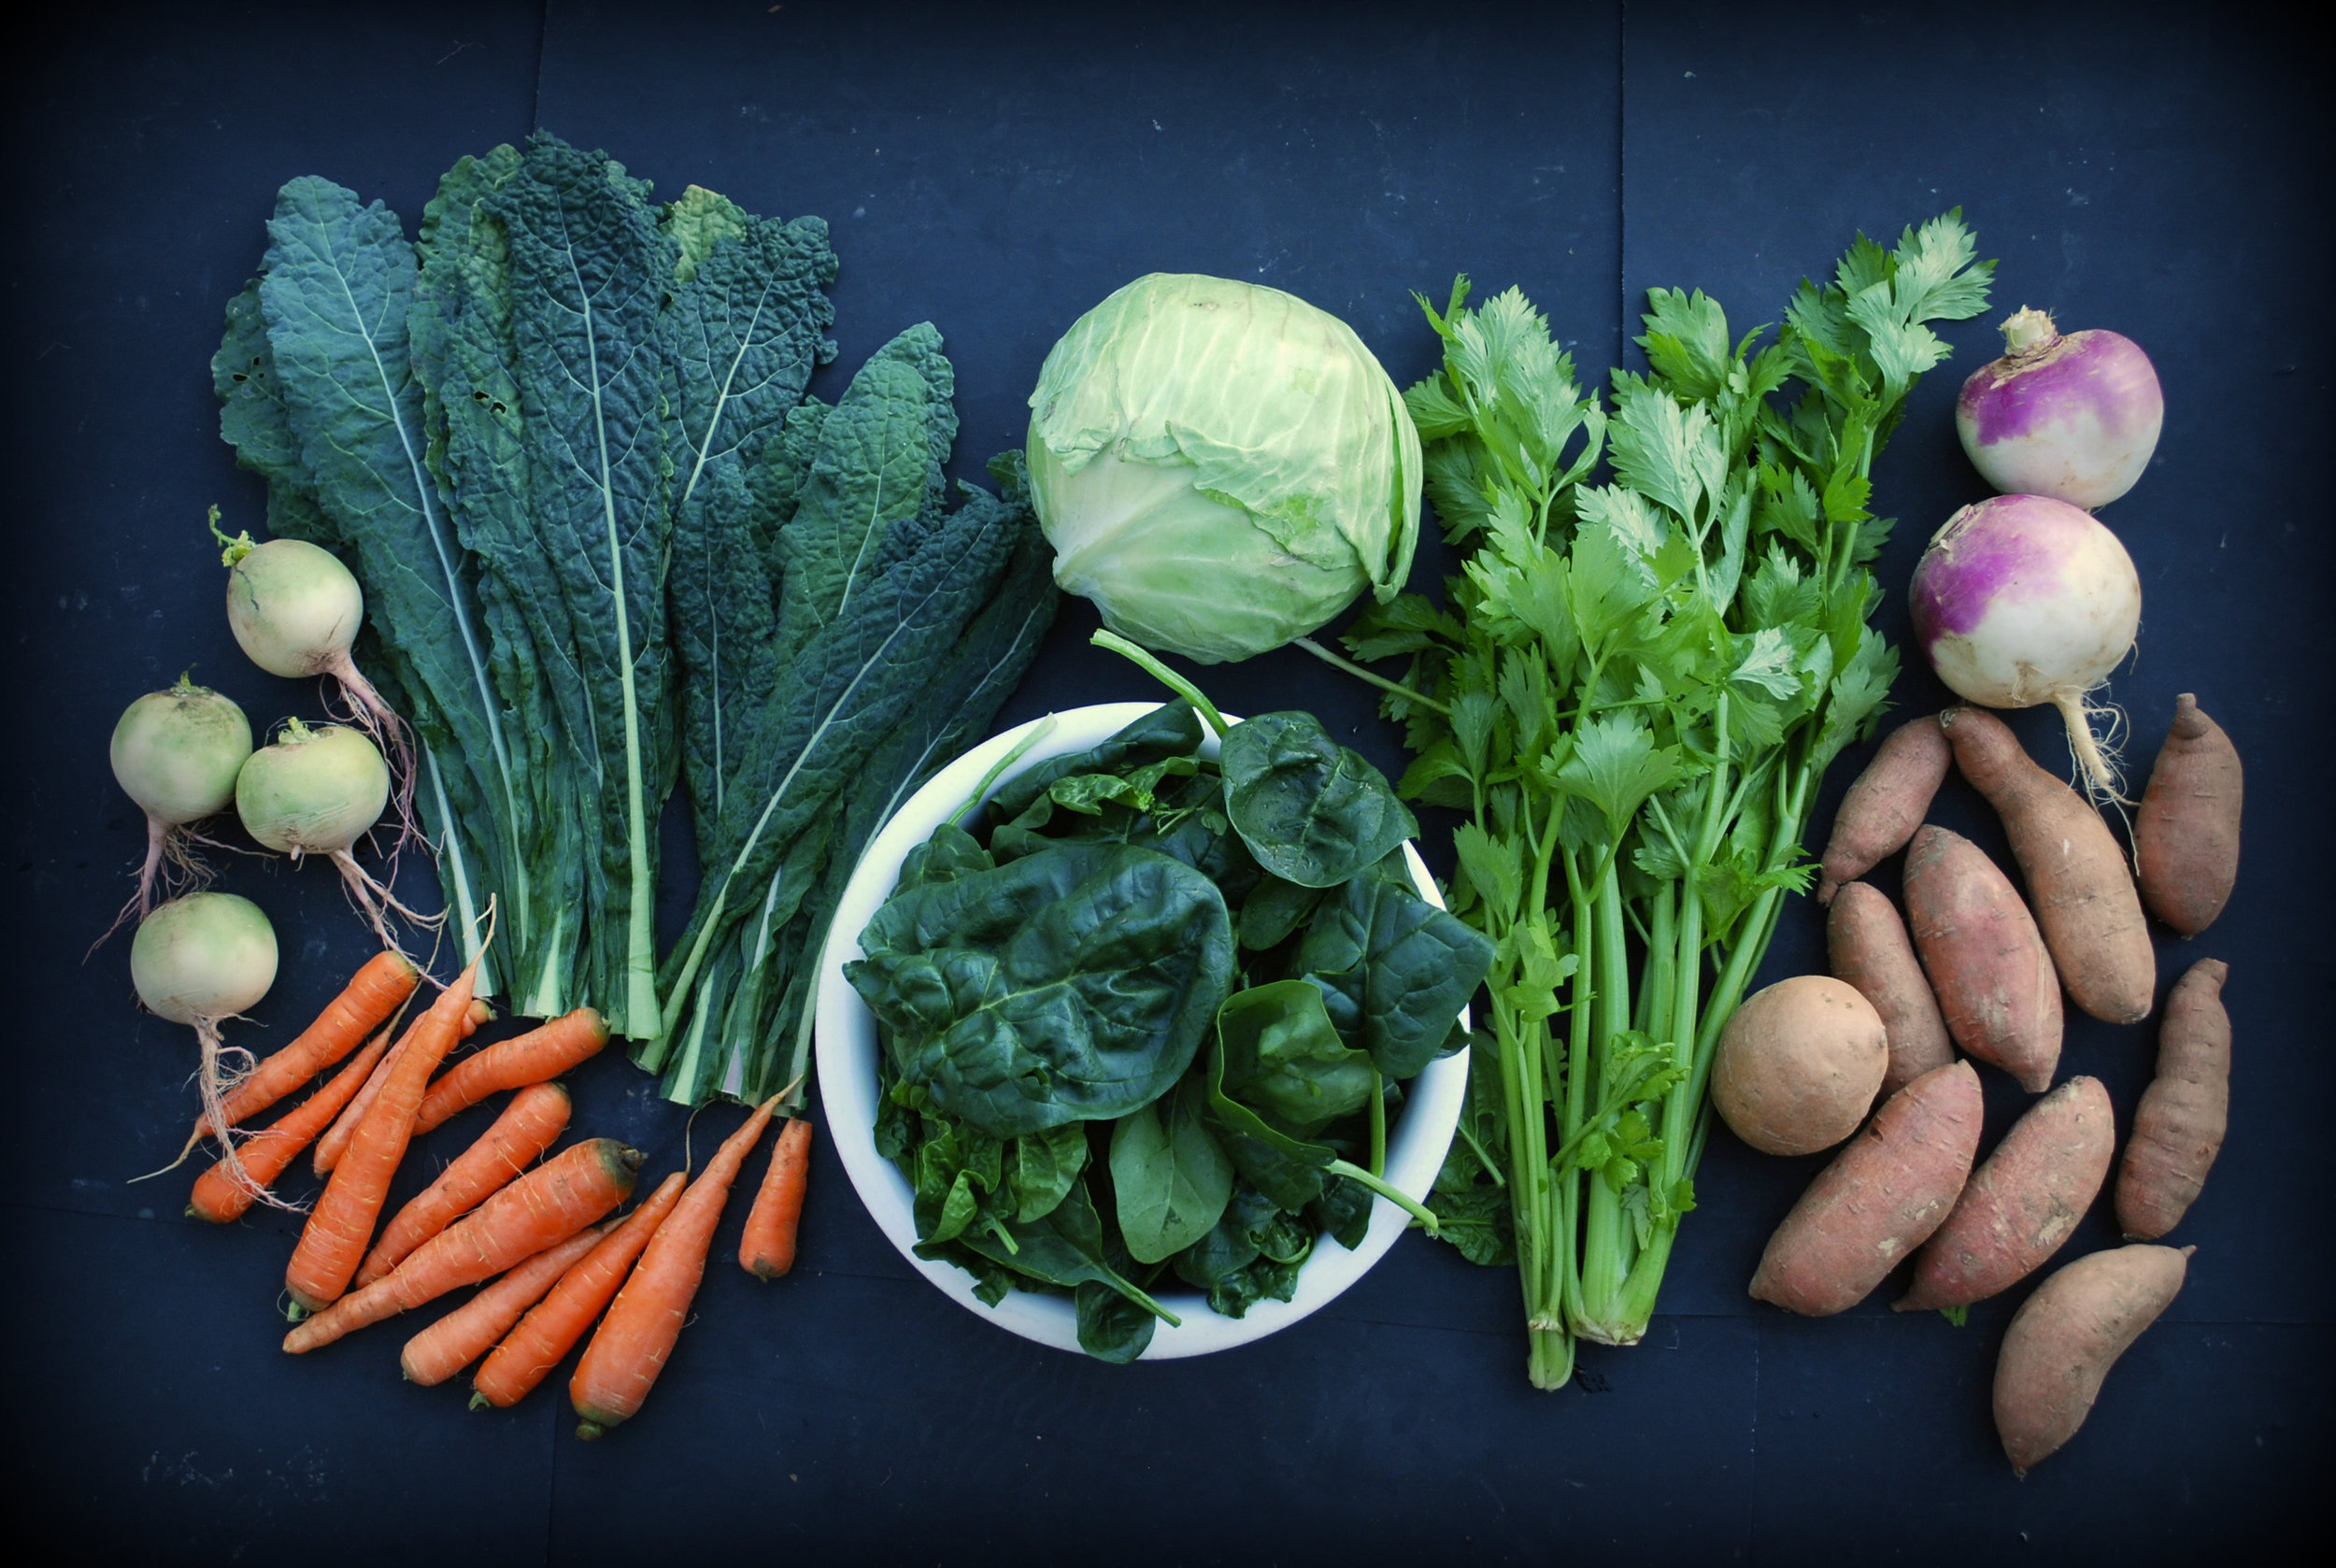 You Week 12 Share: Watermelon radishes, carrots, dinosaur kale, spinach, green cabbage, celery, turnips, sweet potatoes.